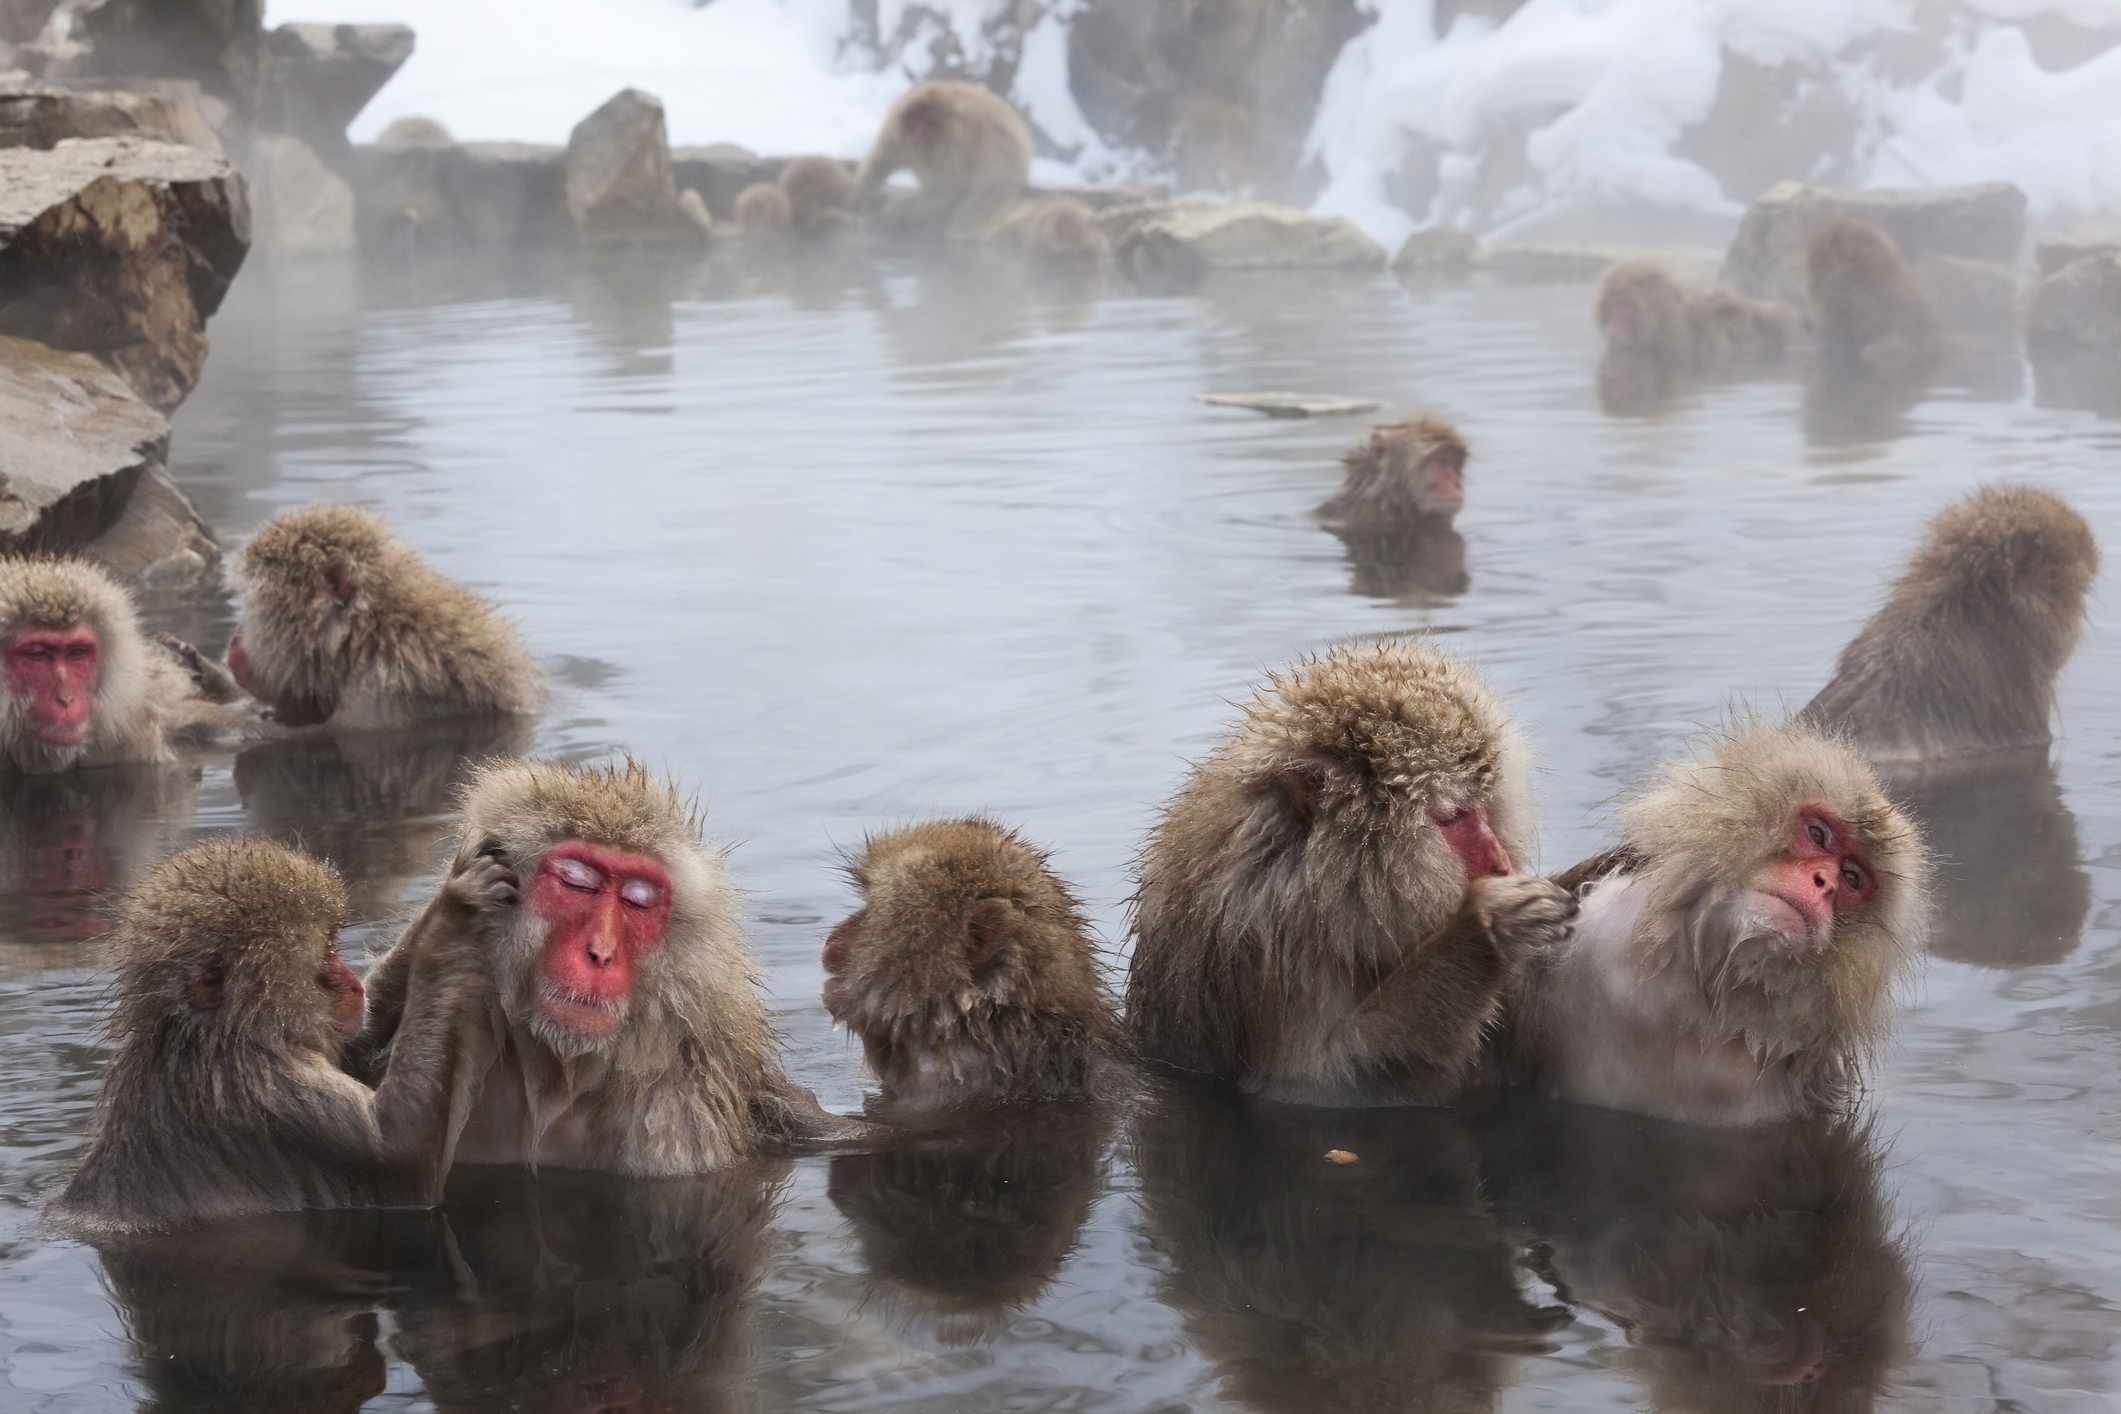 Japanese macaques in a large warm pond surrounded by snow